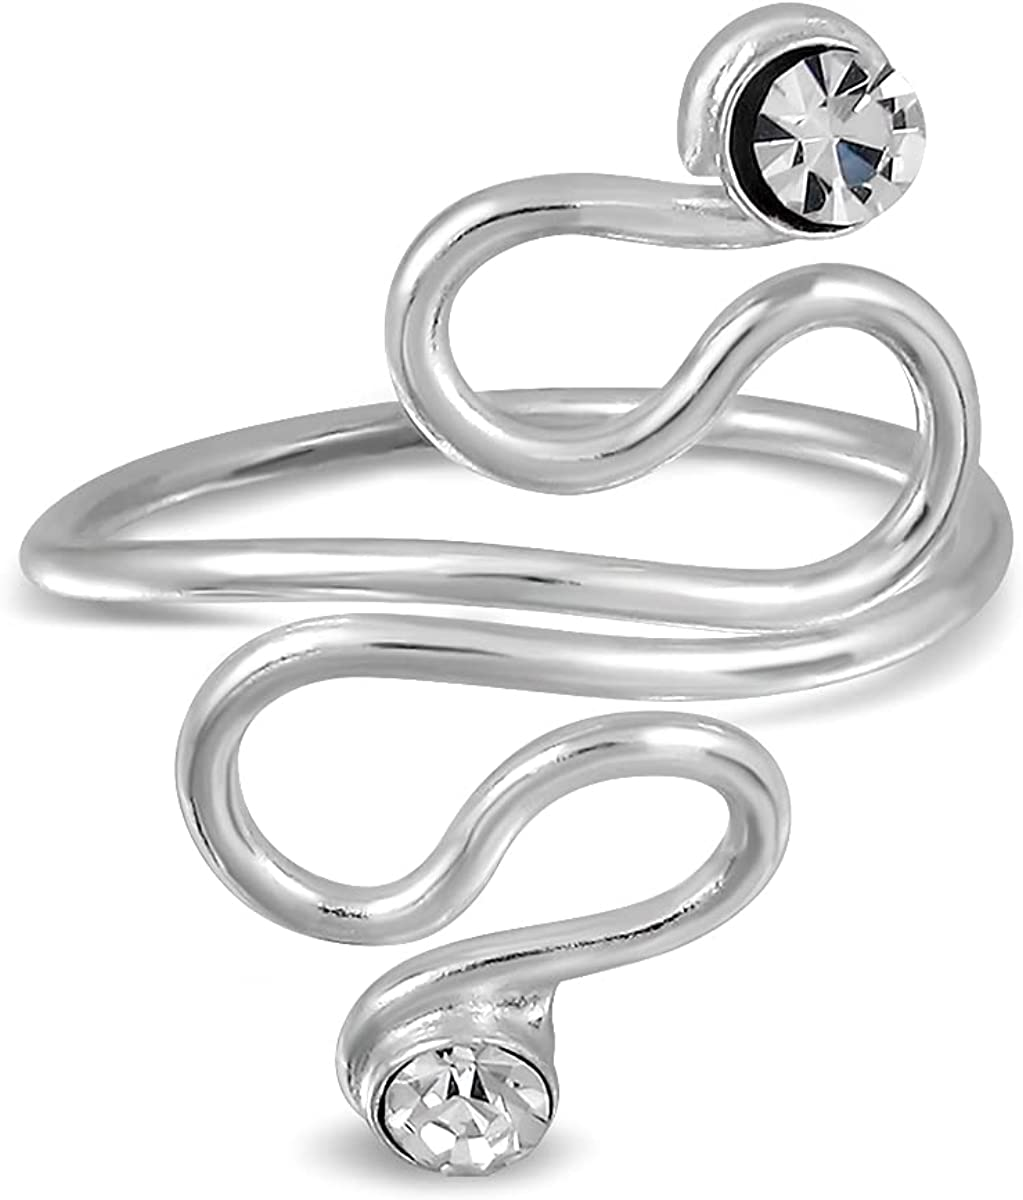 WithLoveSilver Baltimore Mall Sterling Ranking TOP9 Silver Spiral Twist Wire C with Swirls 2